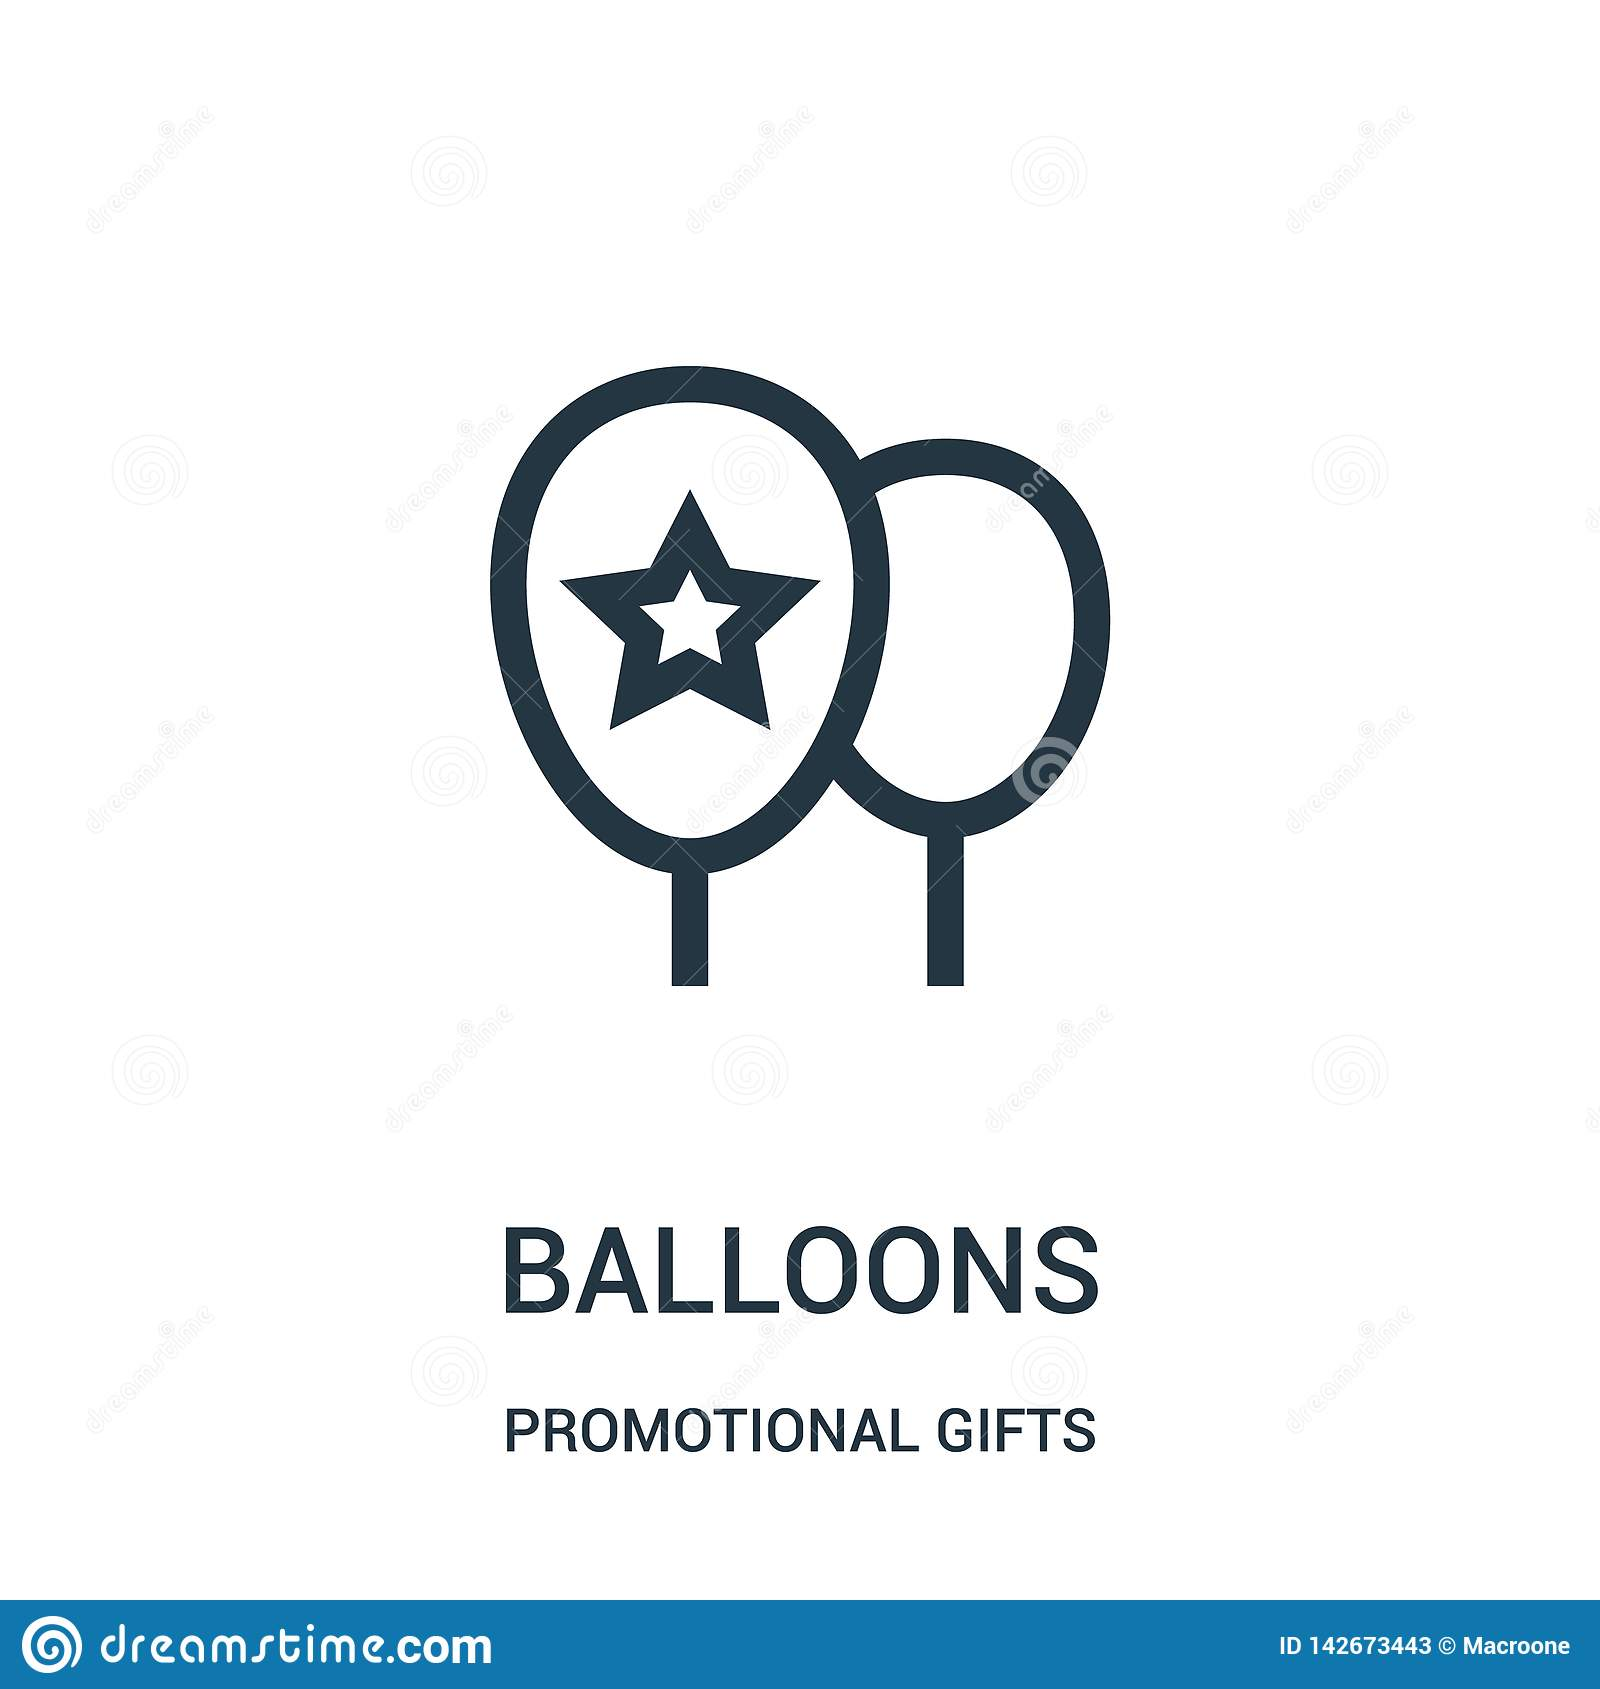 balloons icon vector from promotional gifts collection. Thin line balloons outline icon vector illustration. Linear symbol for use